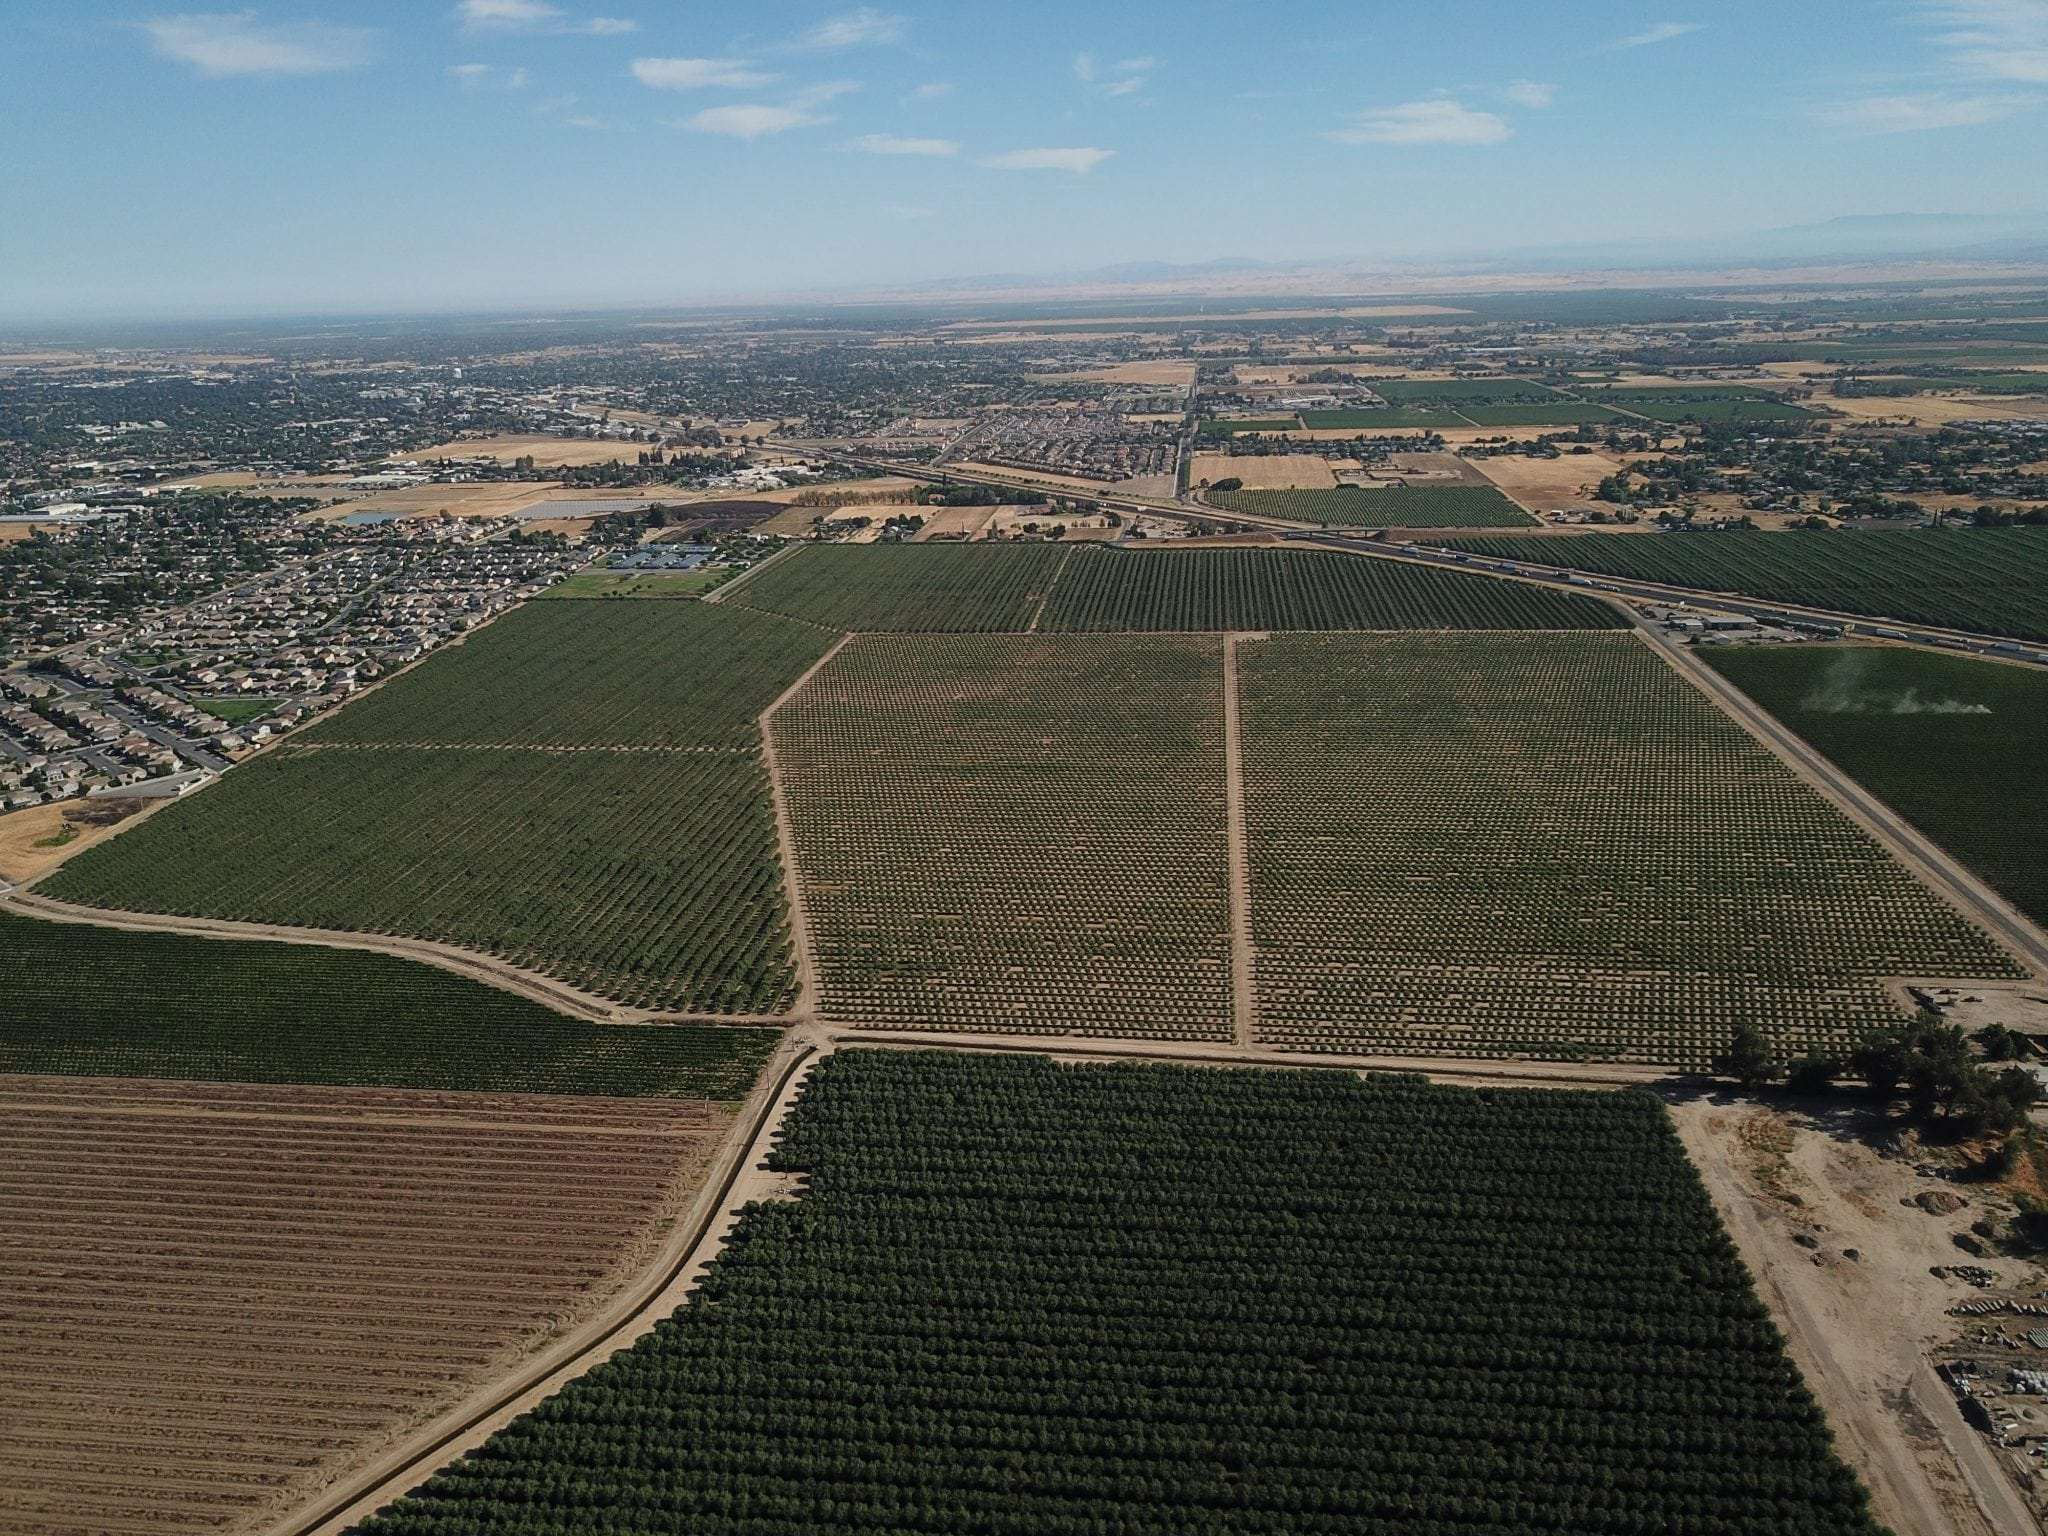 237 Acres Residential Subdivision/Almonds in Madera, CA